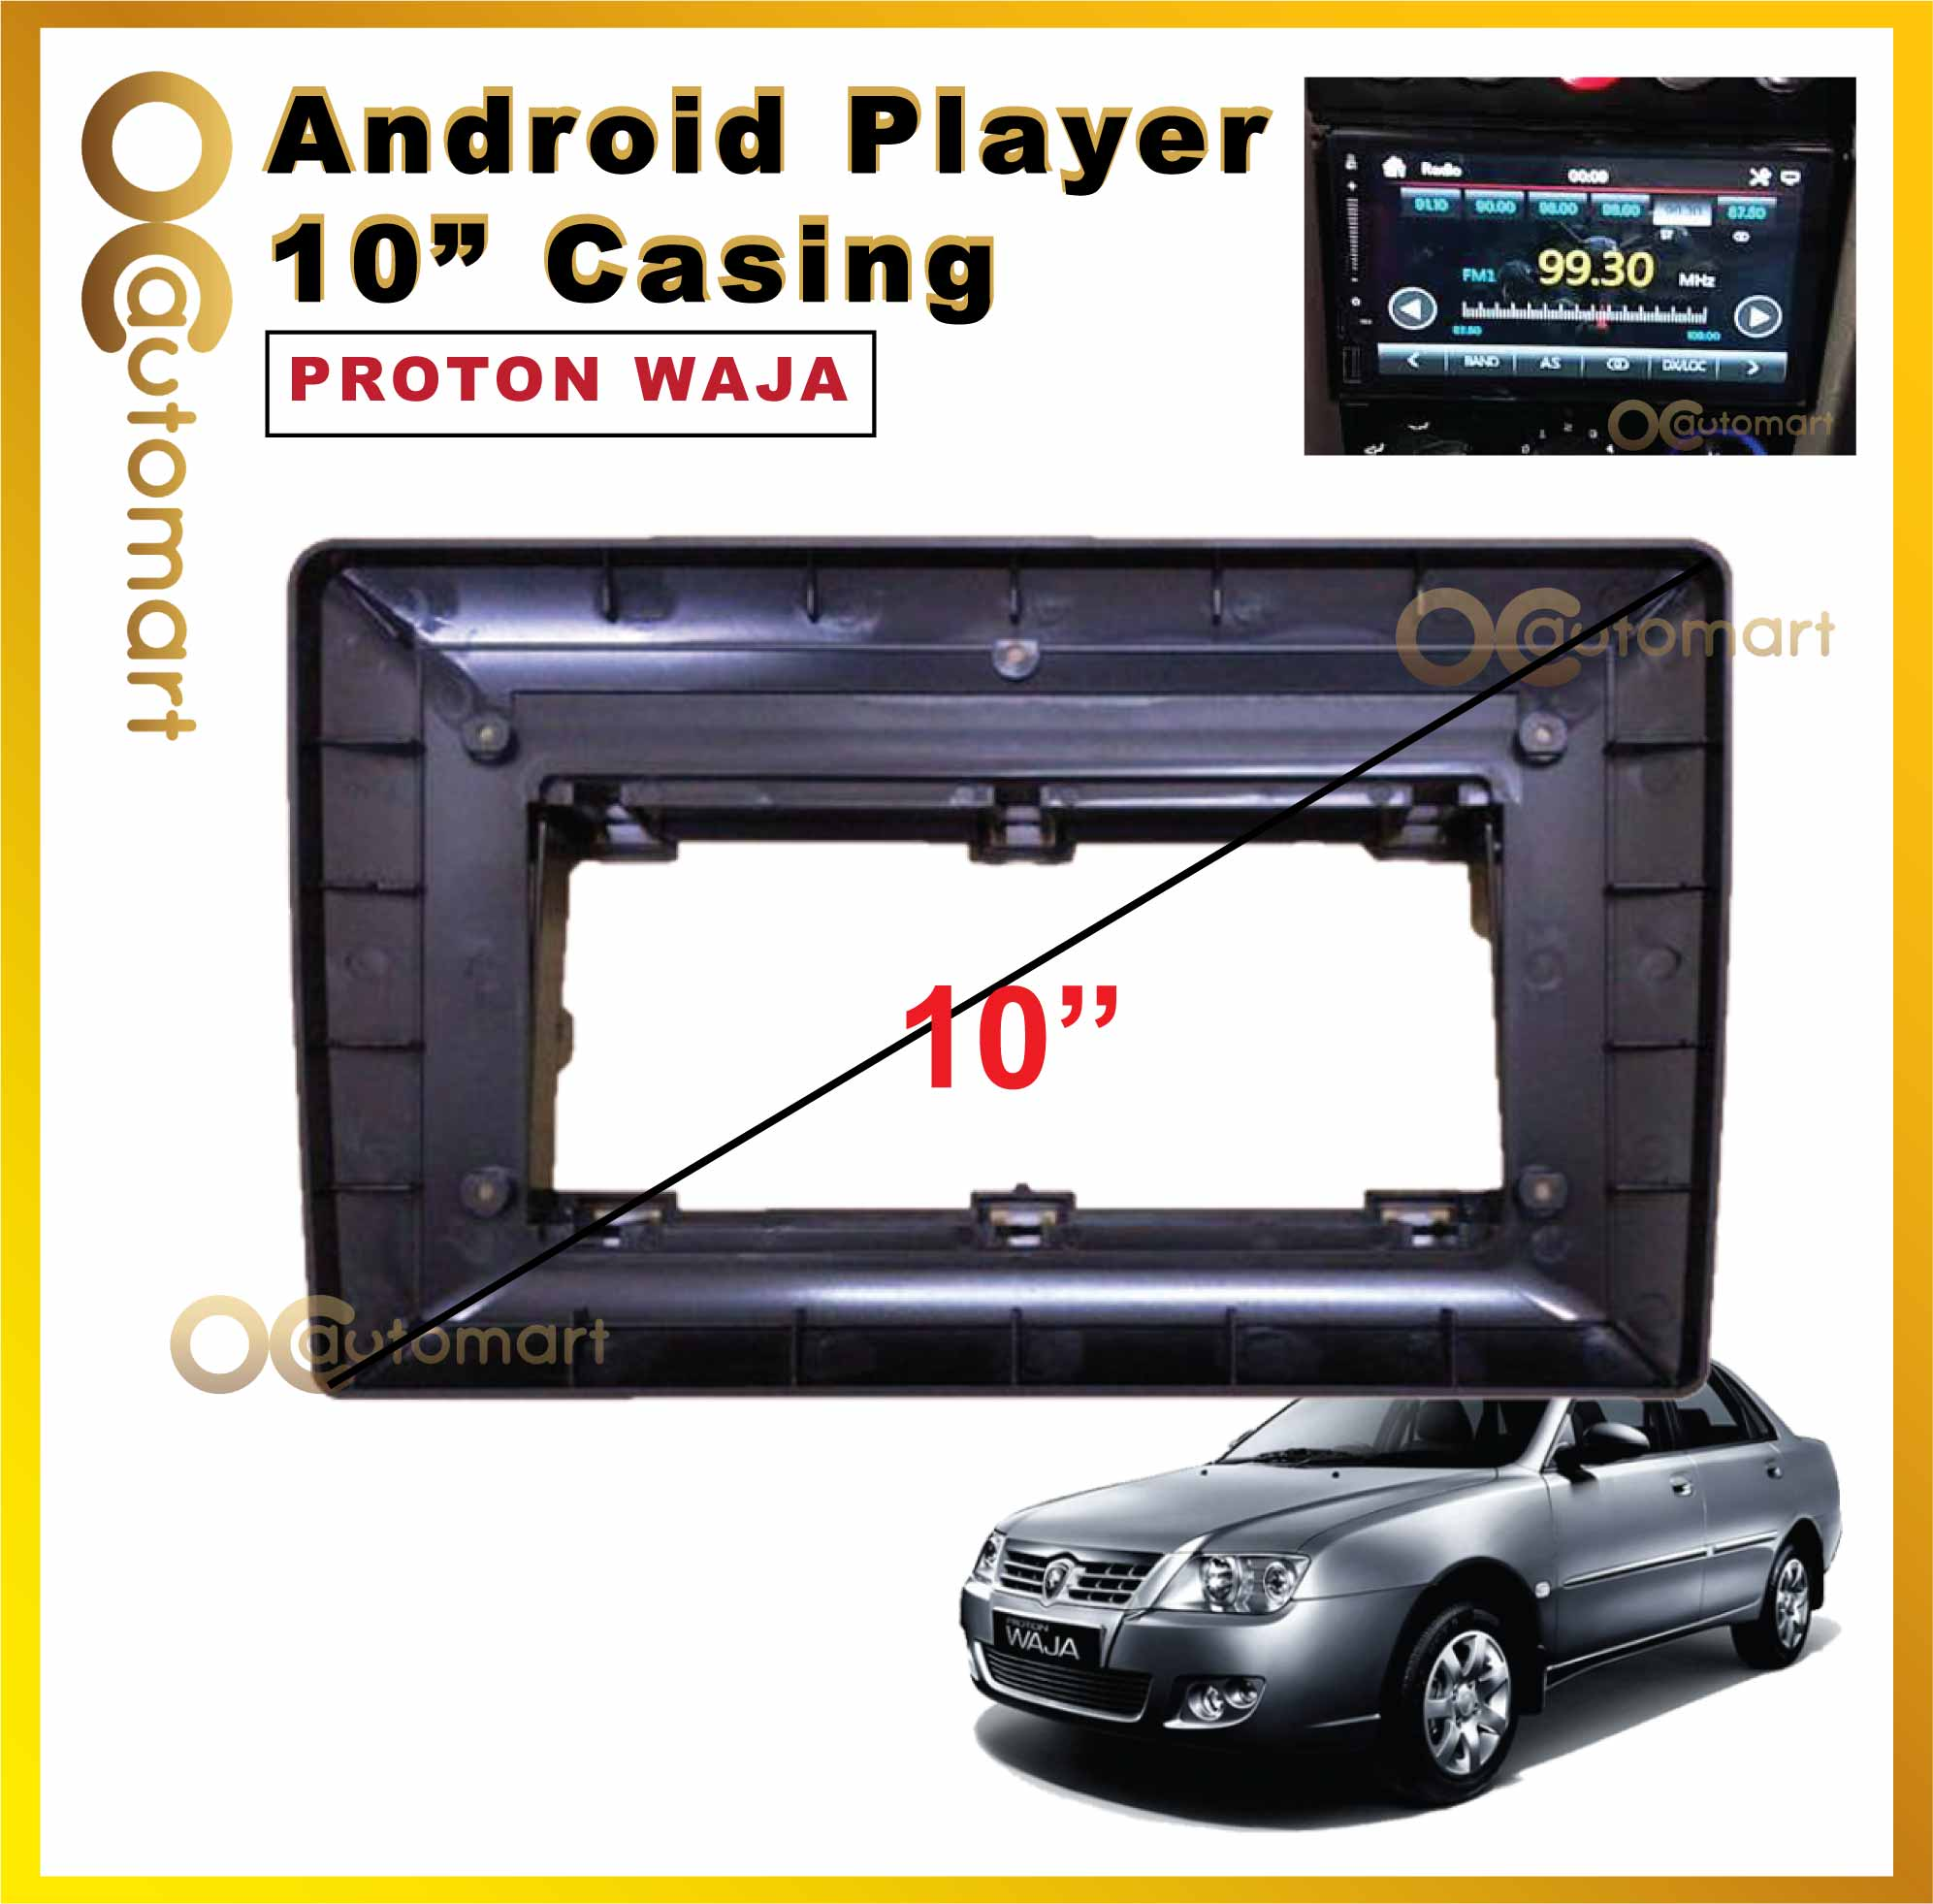 Proton Waja Android Player Casing (10 inch)